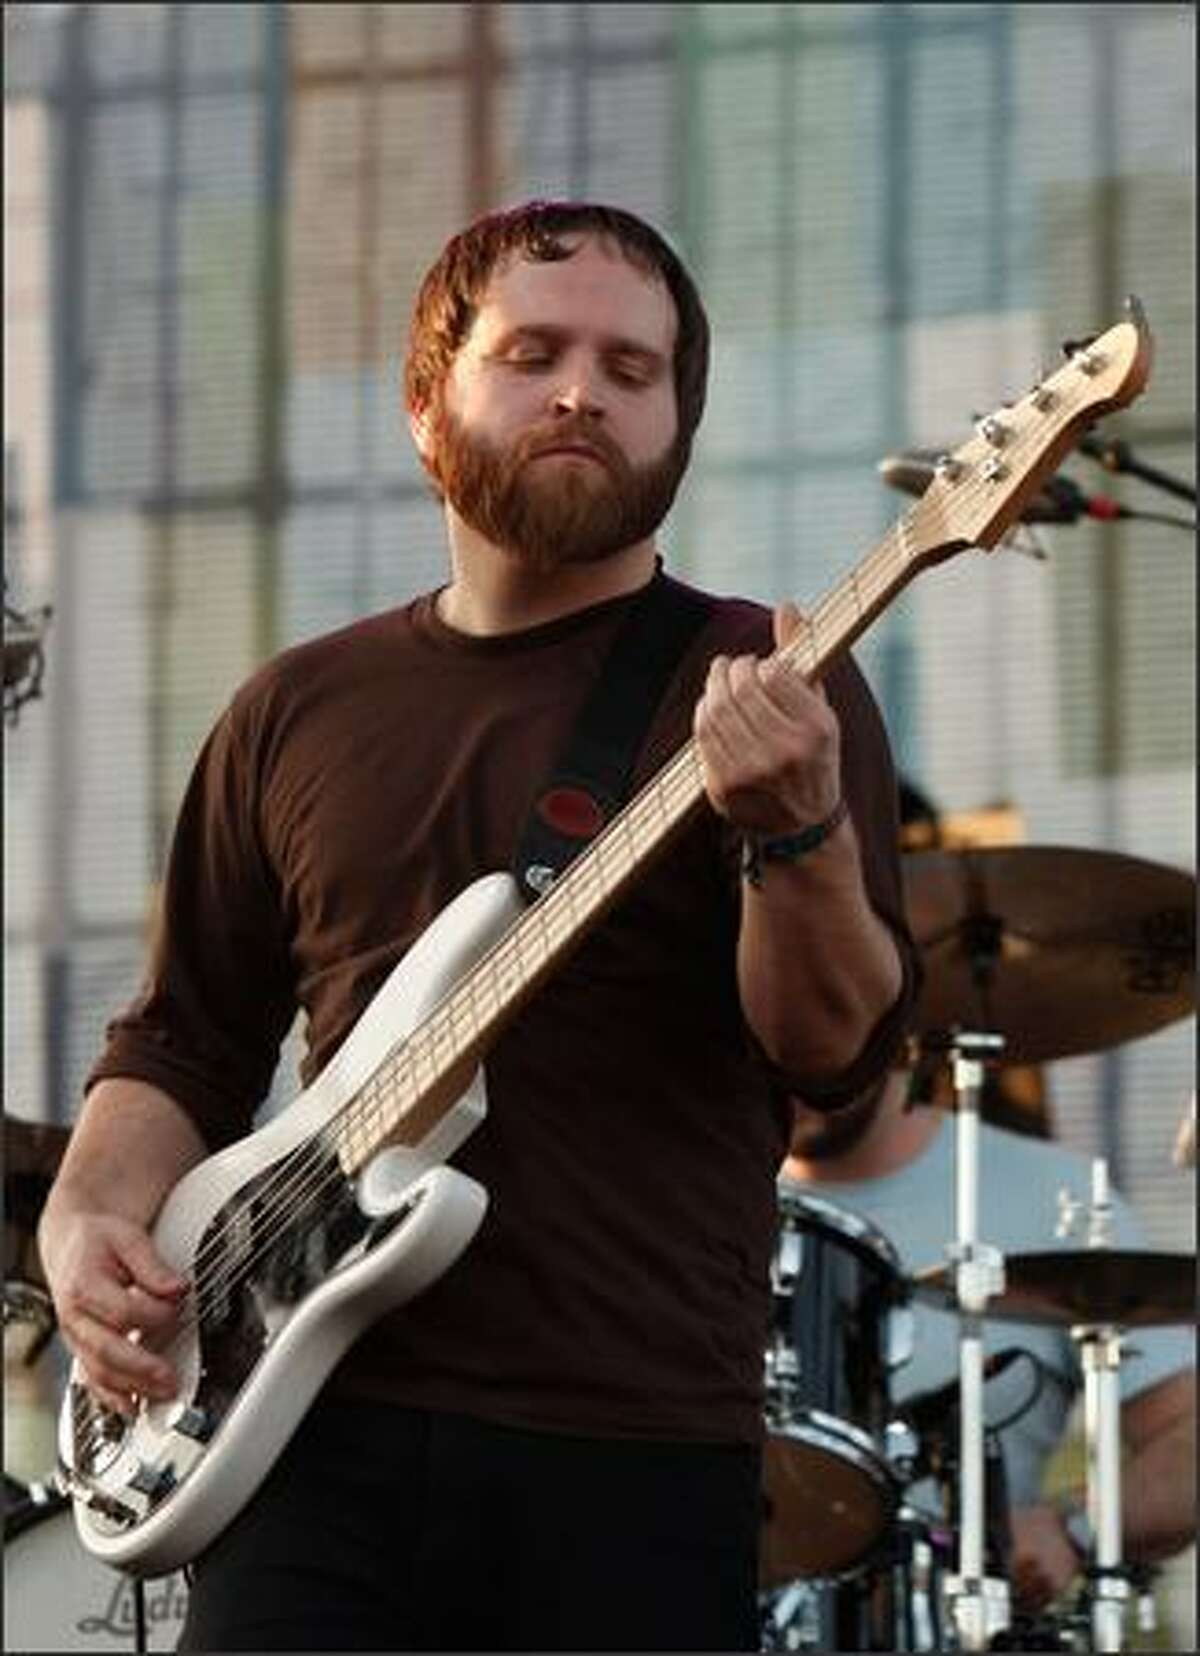 INDIO, CA - APRIL 26: Musician Nick Harmer from the band Death Cab for Cutie performs during day 2 of the Coachella Valley Music And Arts Festival held at the Empire Polo Field on April 26, 2008 in Indio, California.